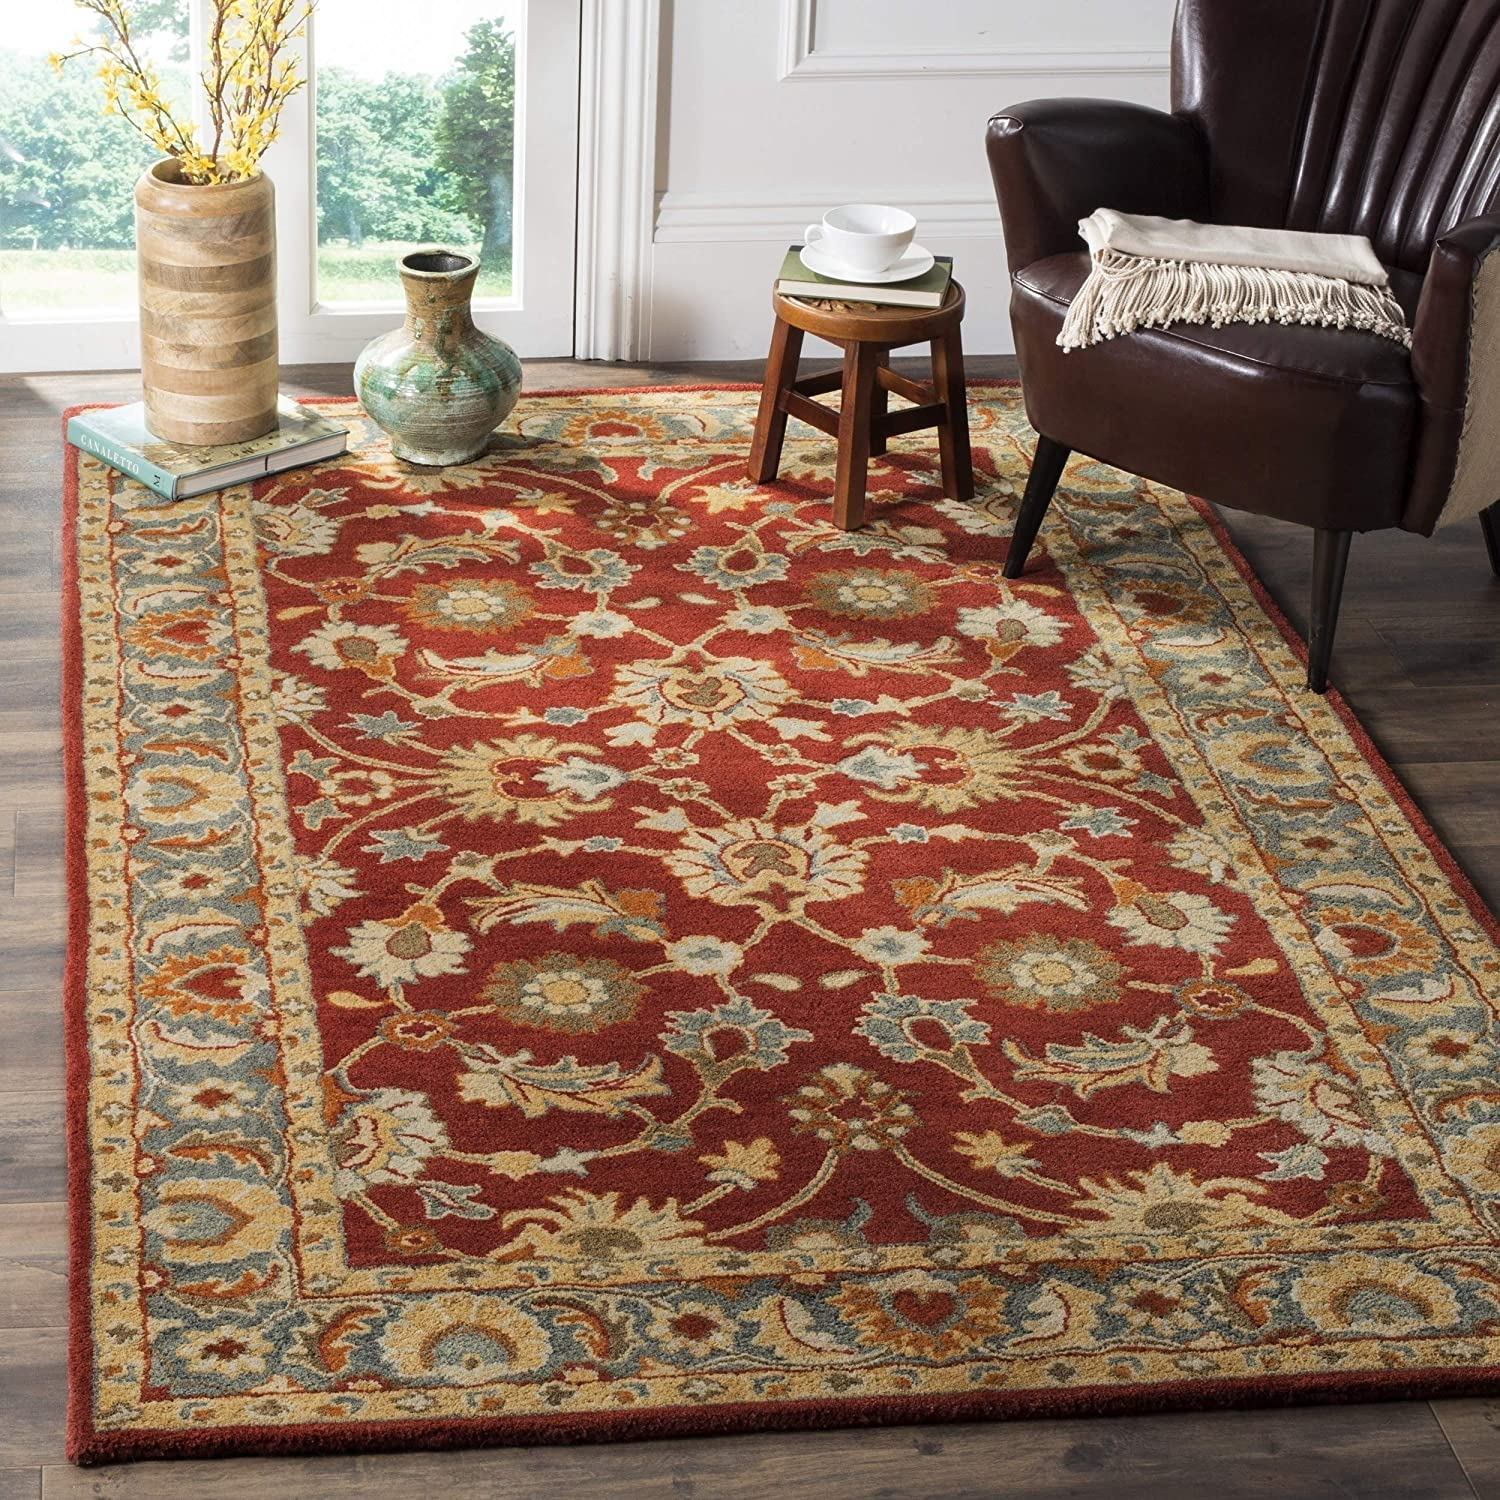 Safavieh Heritage Collection HG403A Handmade Traditional Oriental Premium Wool Area Rug, 5' x 8', Red / Blue